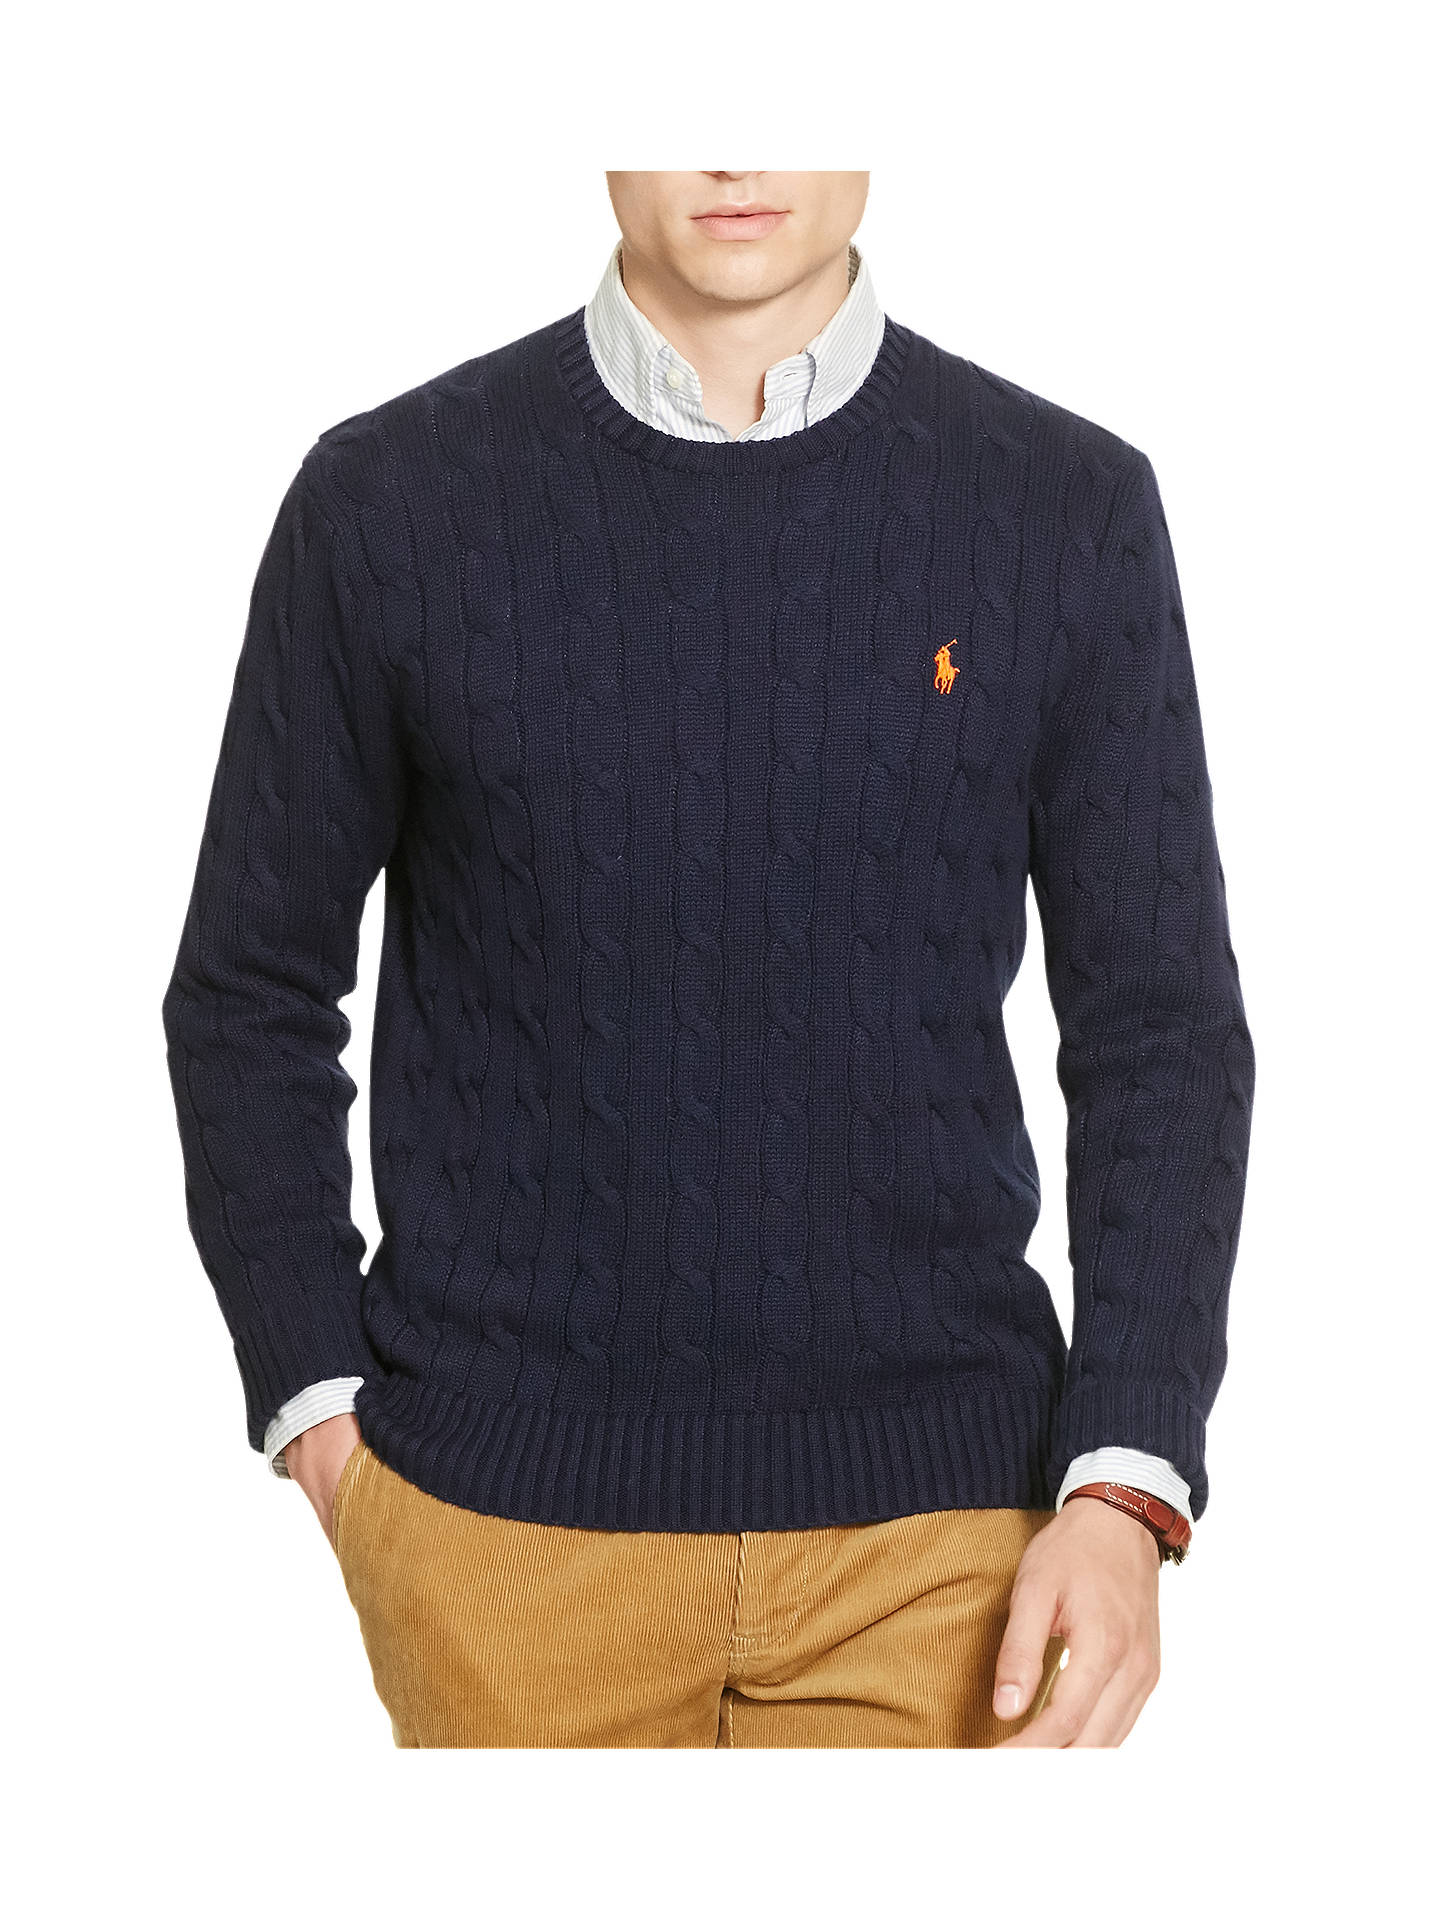 5701b59db6dc7 Buy Polo Ralph Lauren Cable Knit Crew Neck Jumper